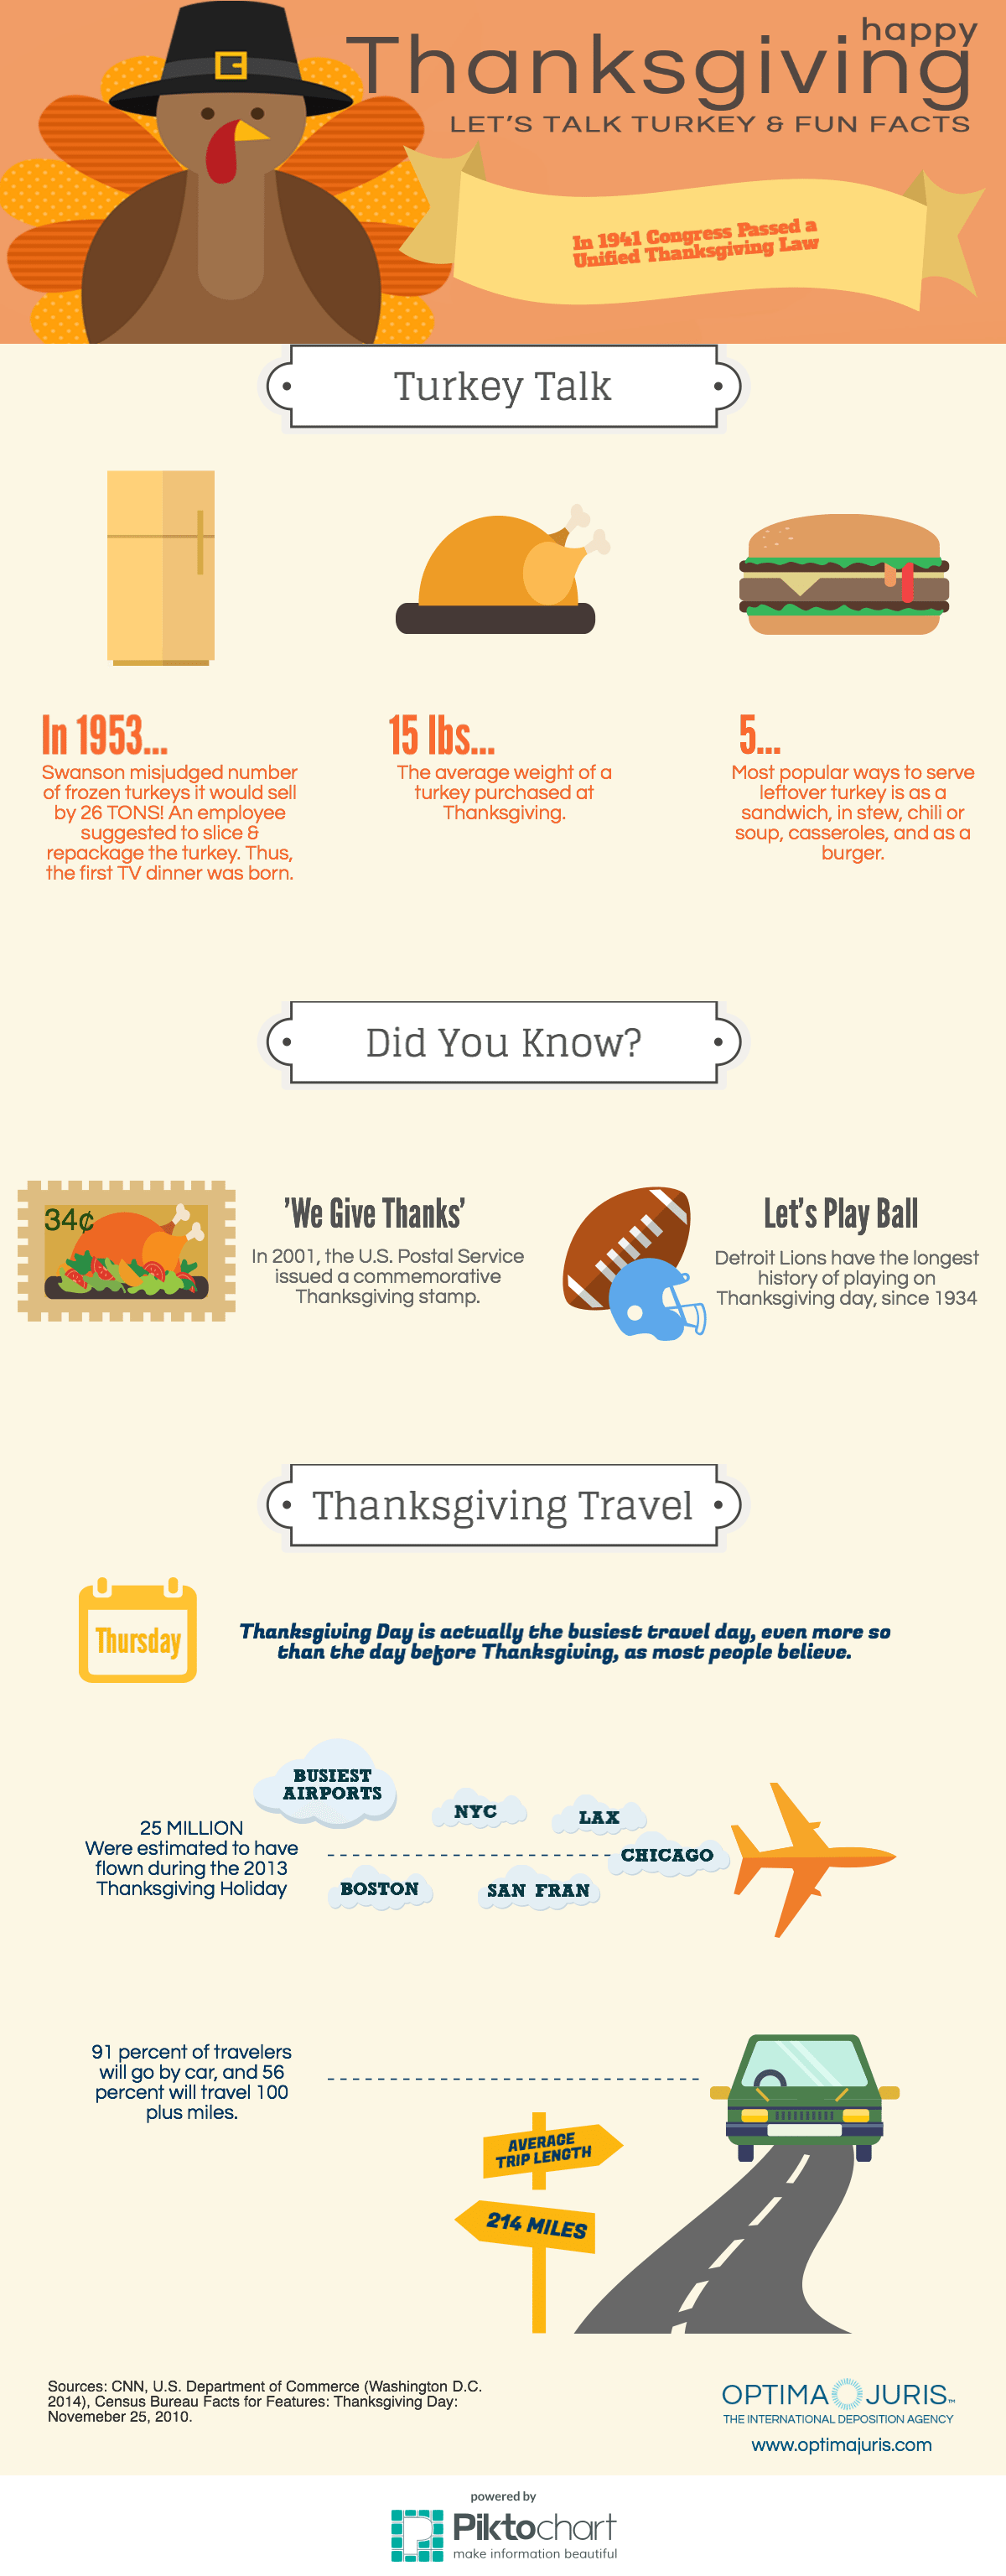 Optima Juris: Thanksgiving Facts Infographic